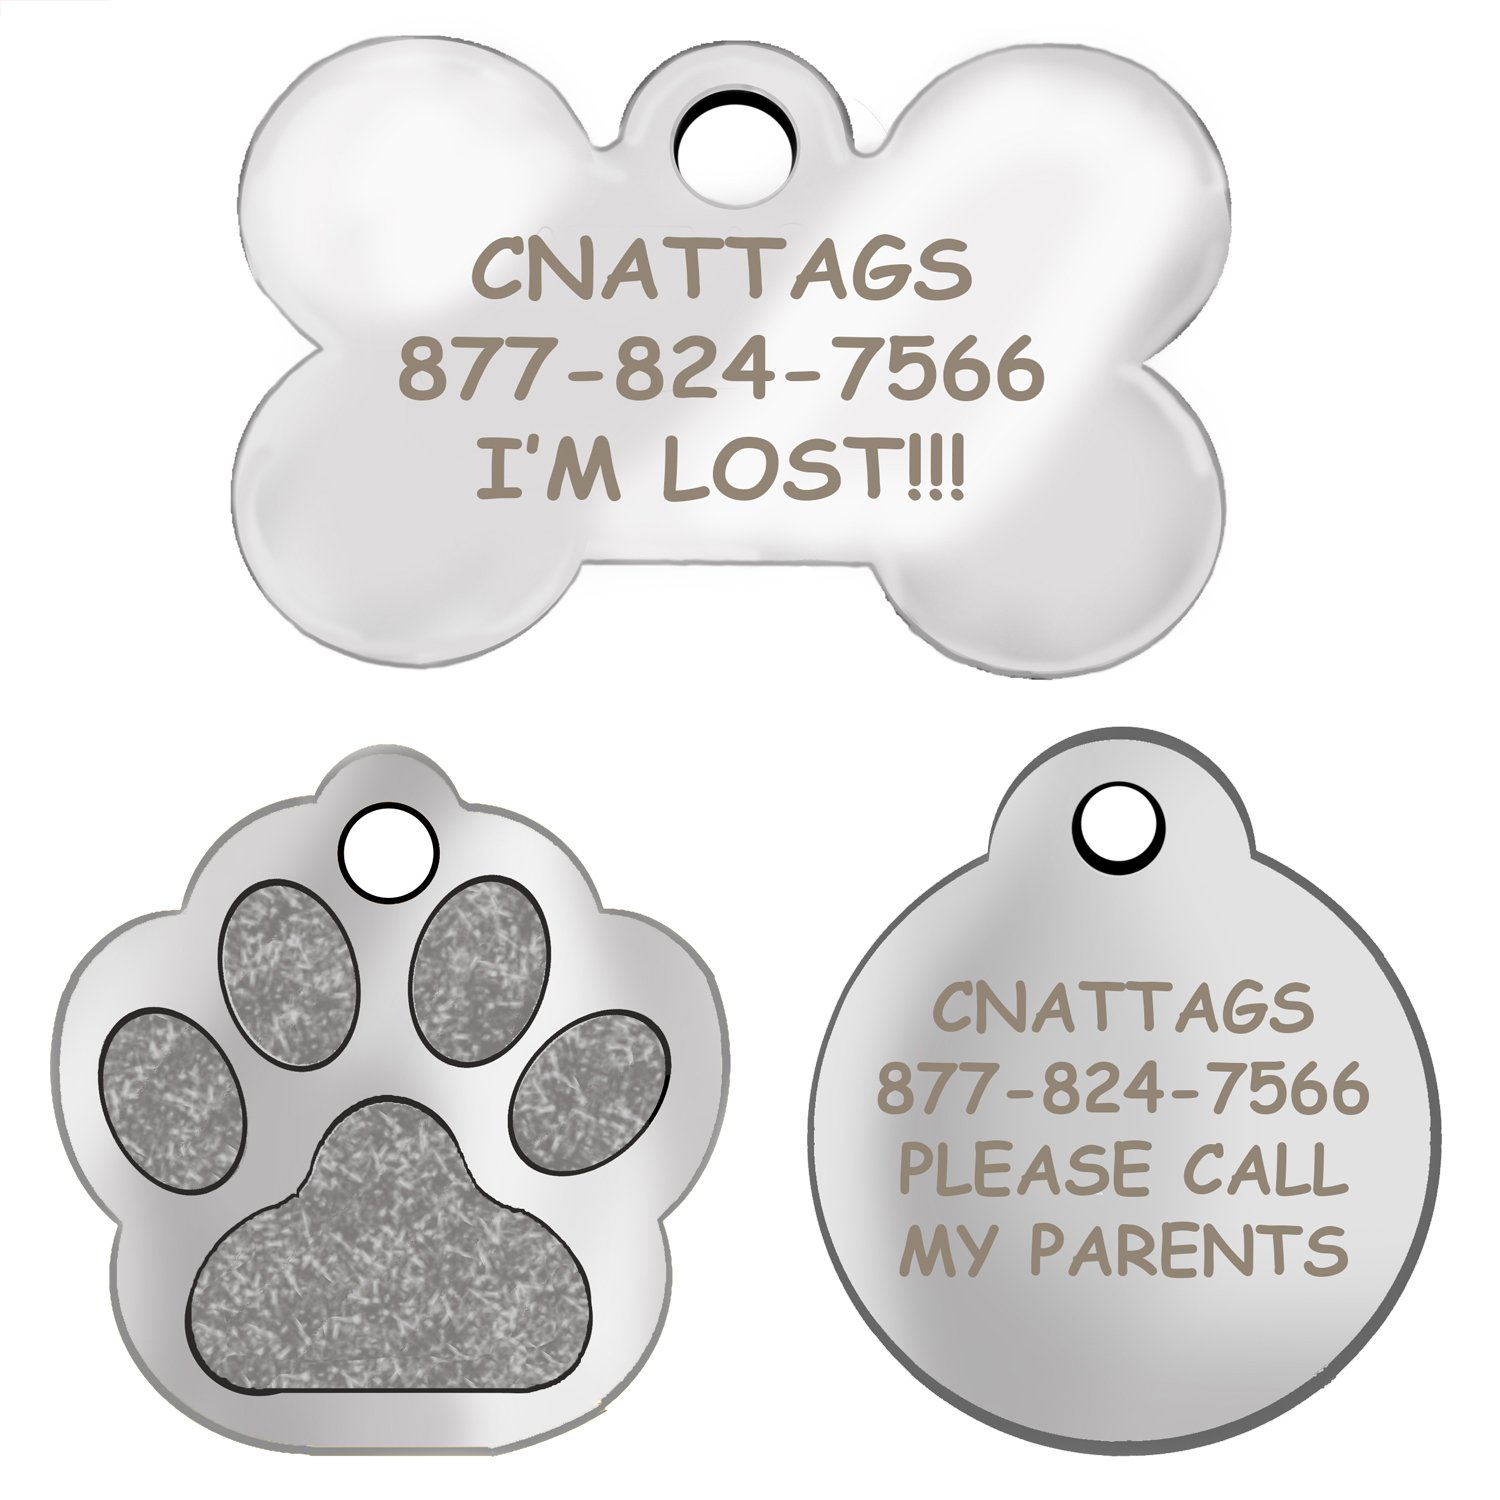 Stainless Steel | Dog Tags Pet Tags Engraved | Many Shapes to Choose From| by CNATTAGS (LIFE TIME WARRANTY)